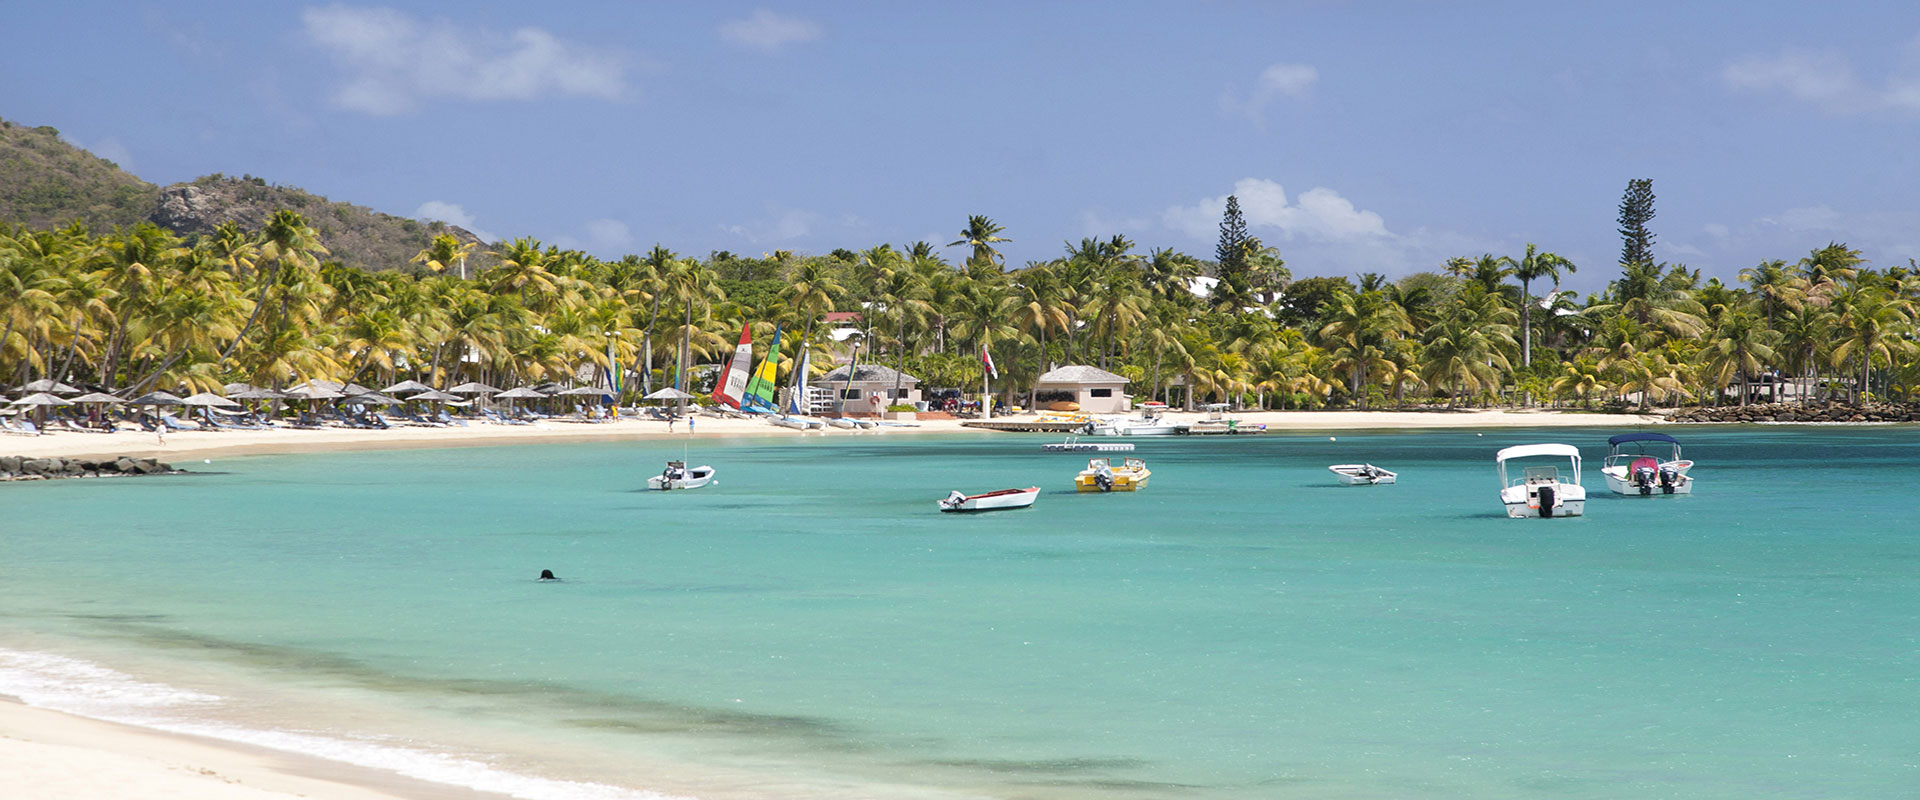 Antigua and Barbuda Citizenship Applications double in FY2018